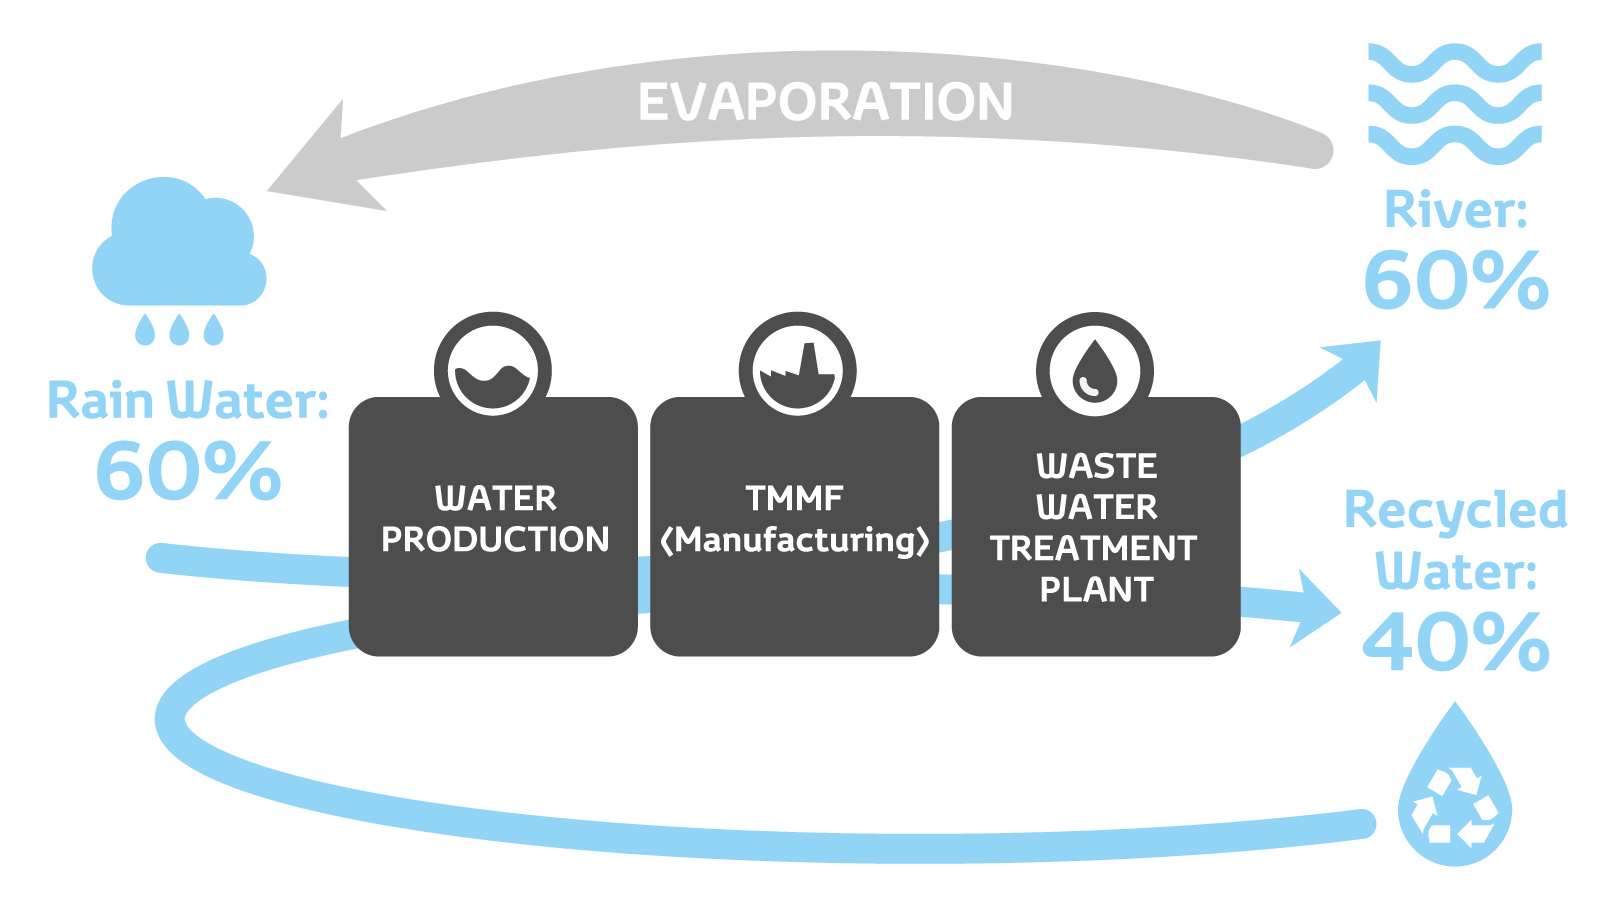 Toyota Reuse Raw 4 Engine Diagram The Water Treatment Process At Motor Manufacturing France